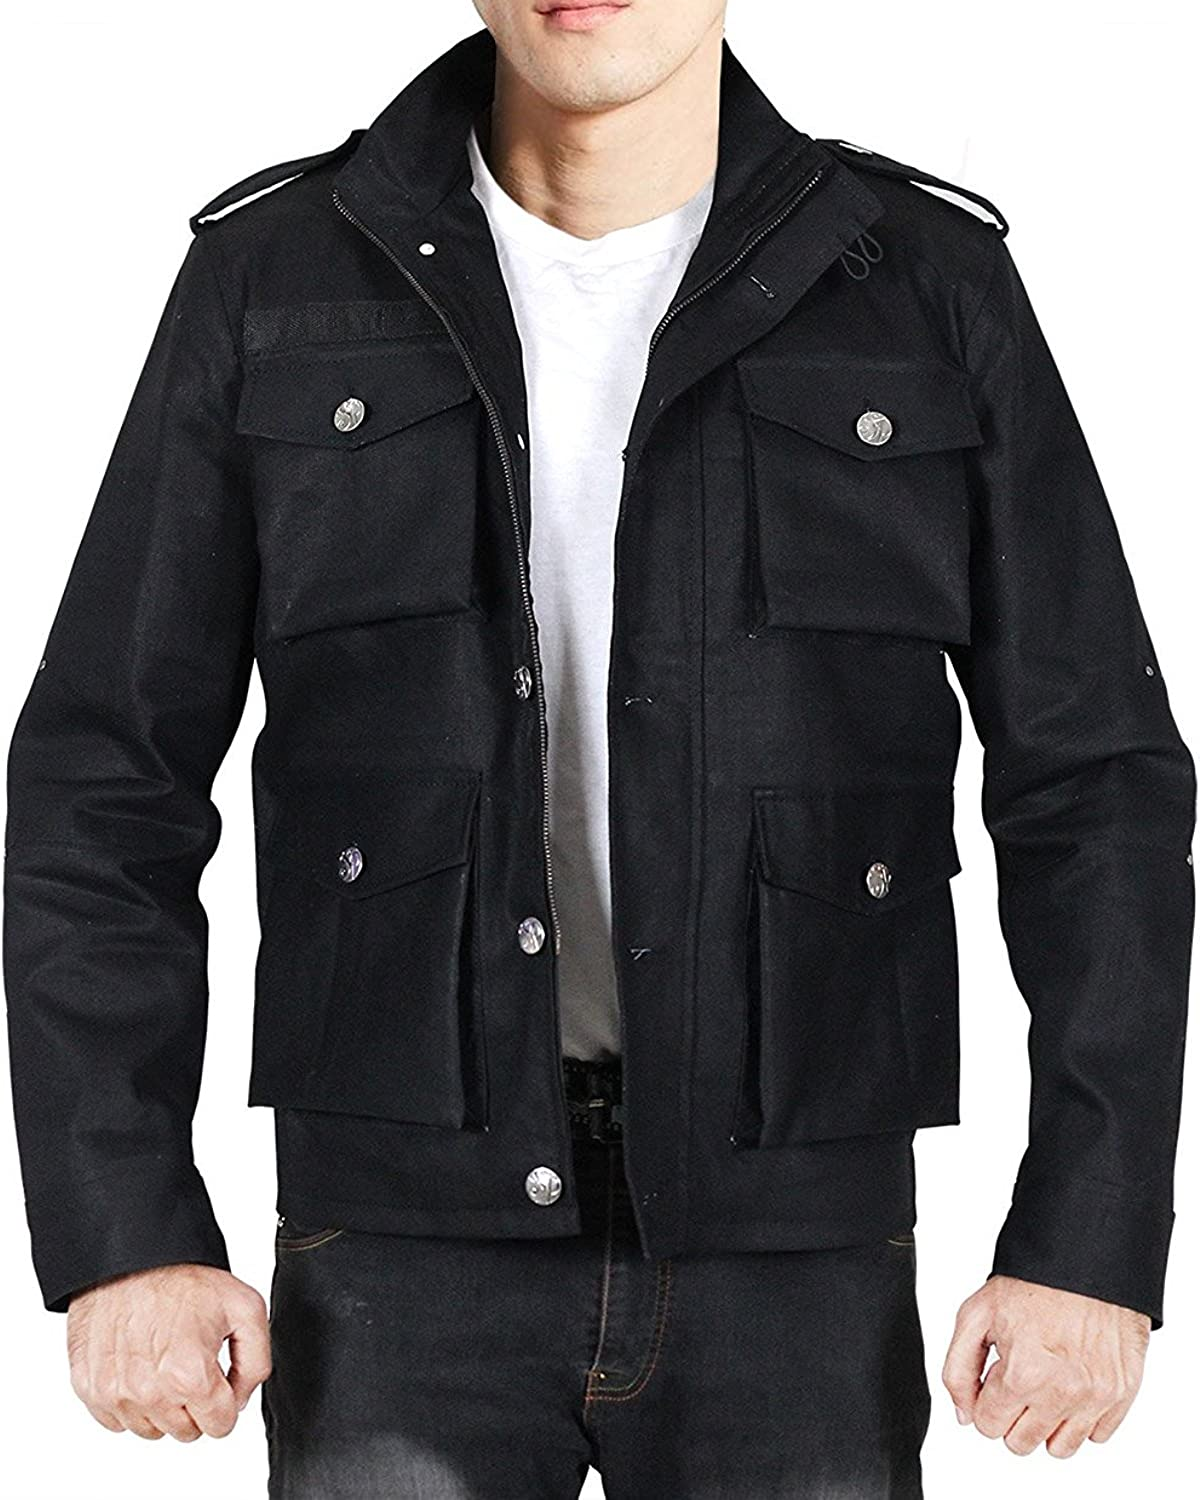 Commando Style Multiple Pockets Black Cotton Jackets for Men